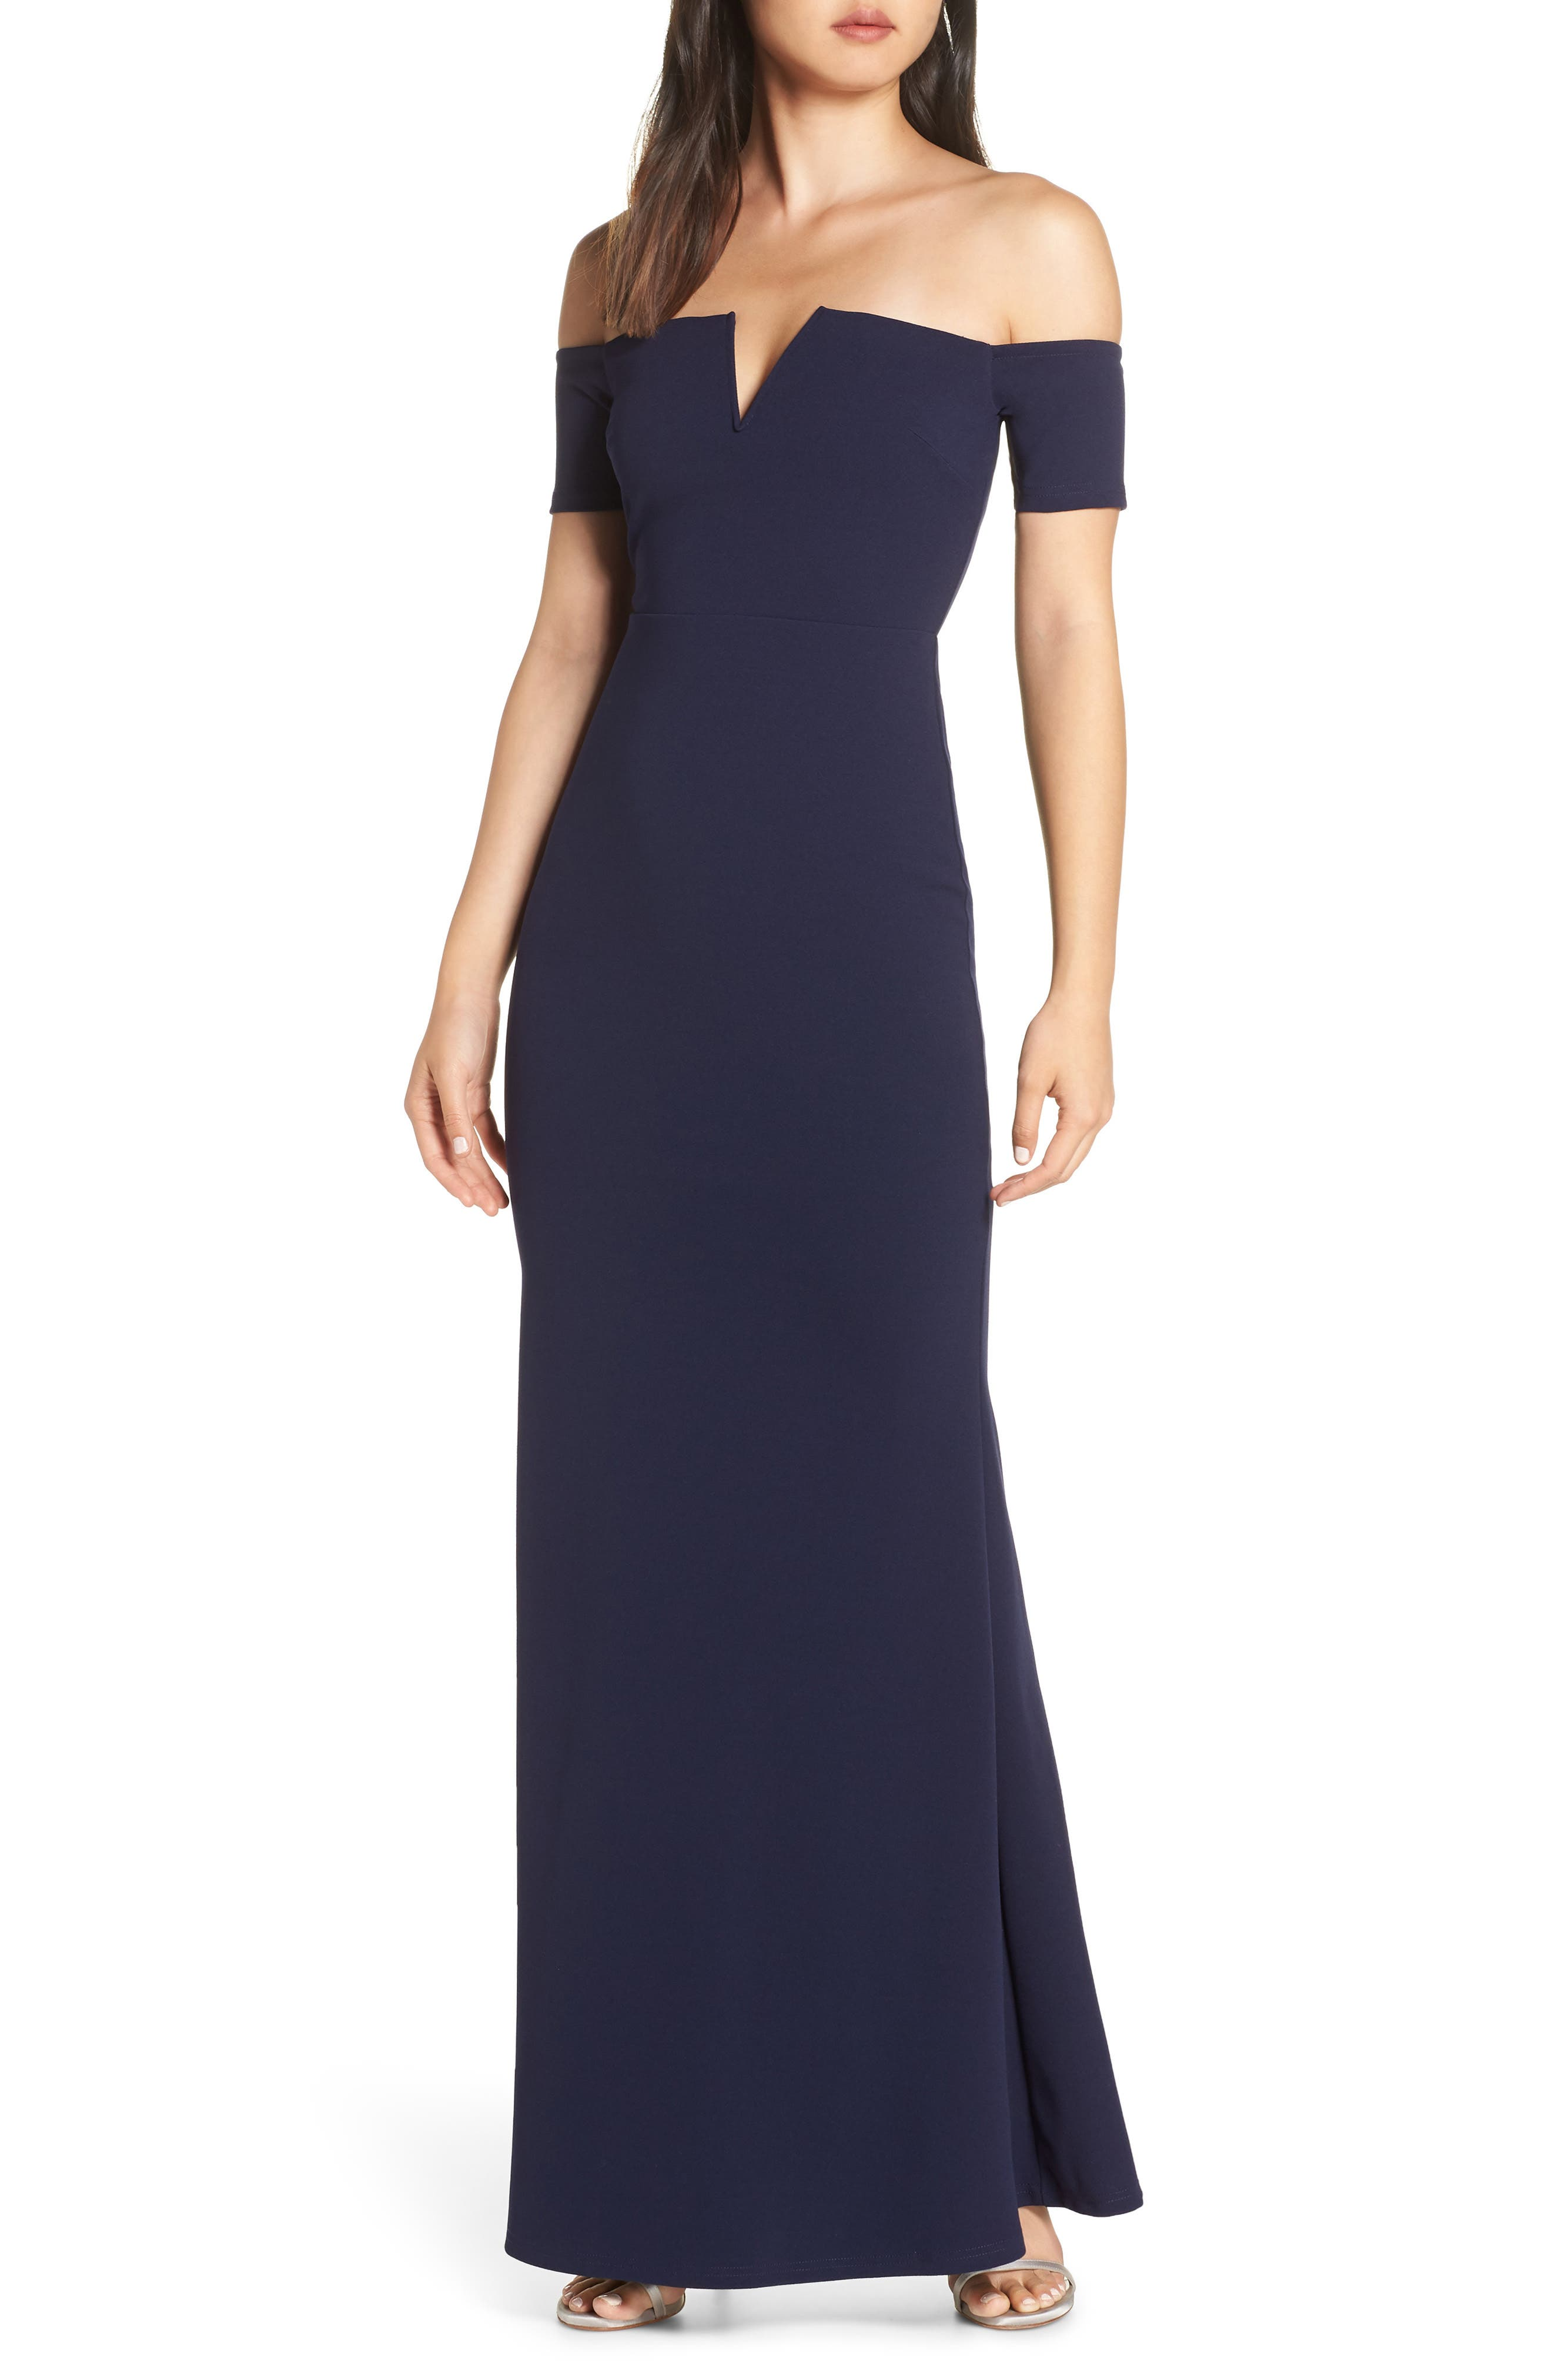 LULUS, Lynne Off the Shoulder Gown, Main thumbnail 1, color, NAVY